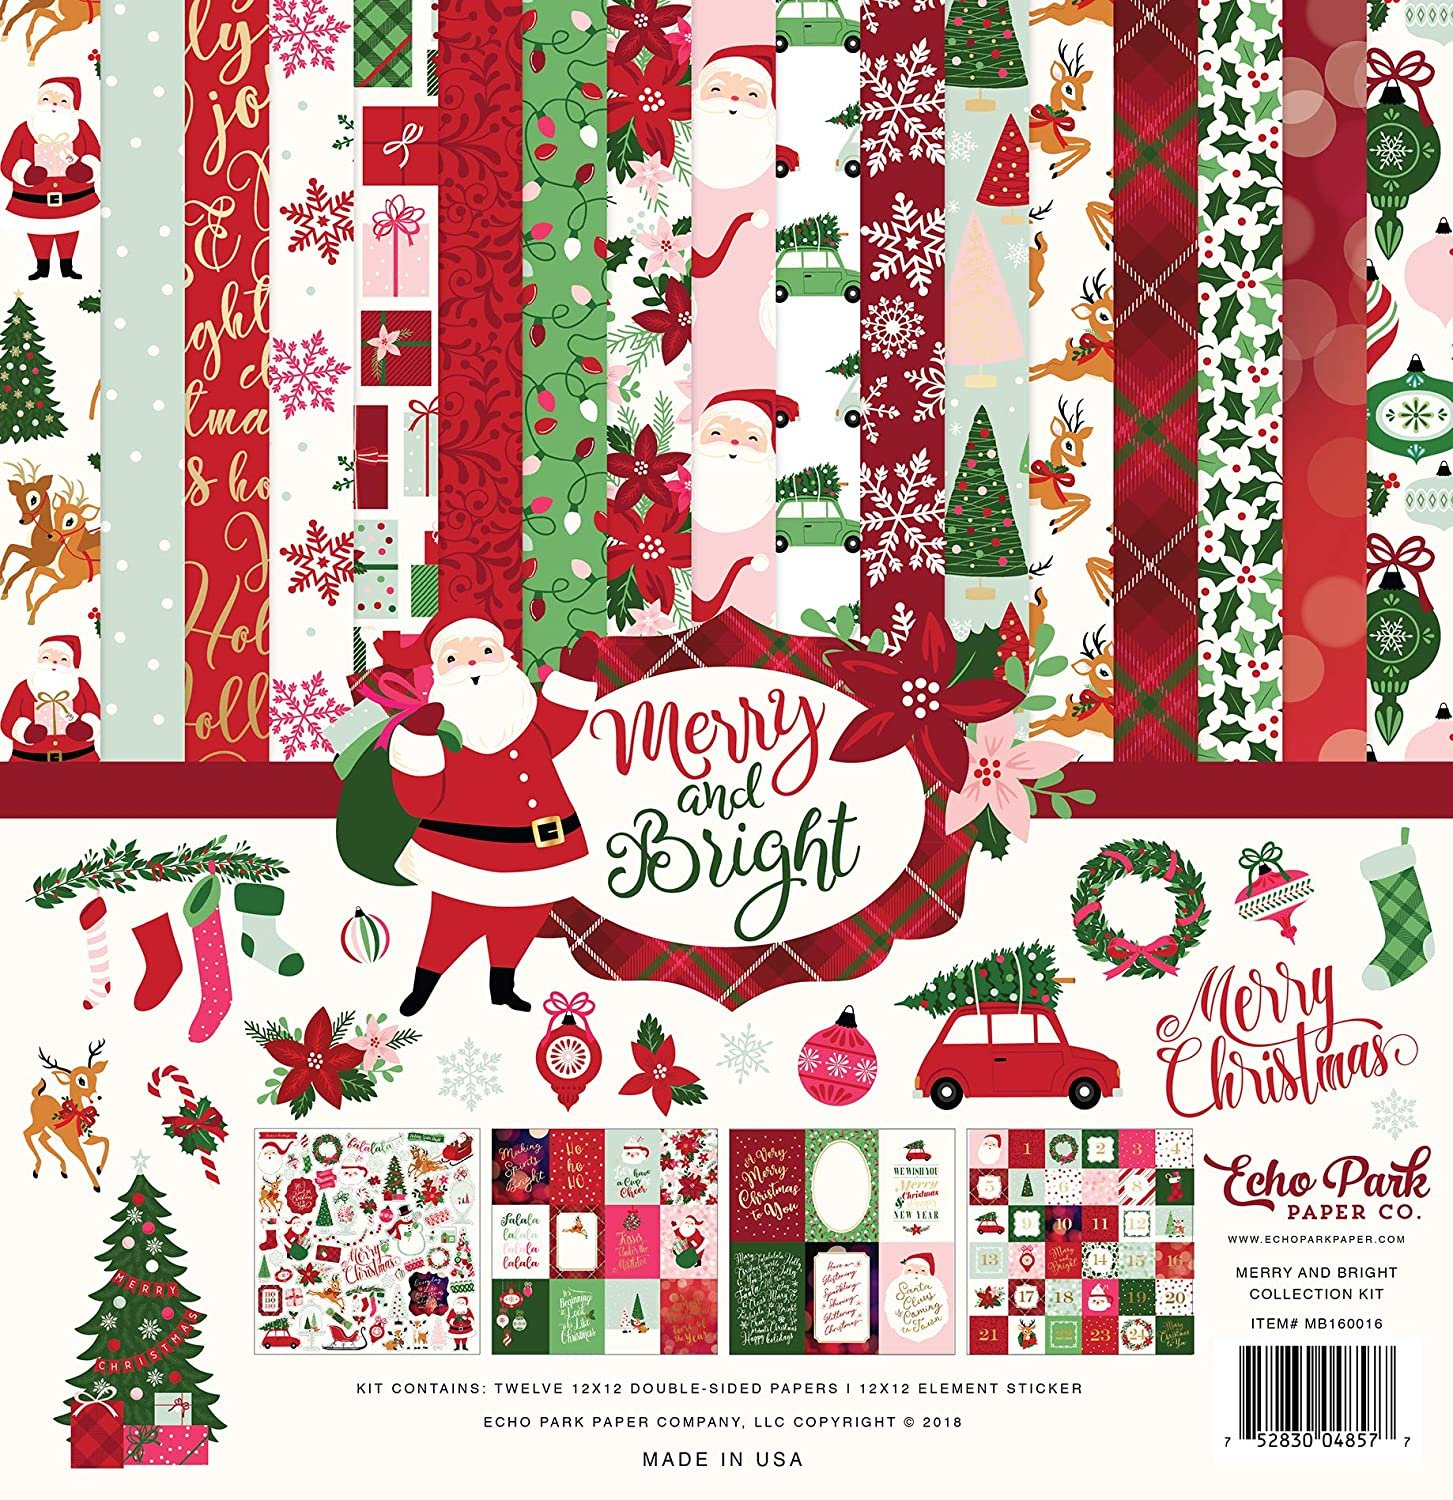 Echo Park Merry and Bright 12x12 Collection Kit